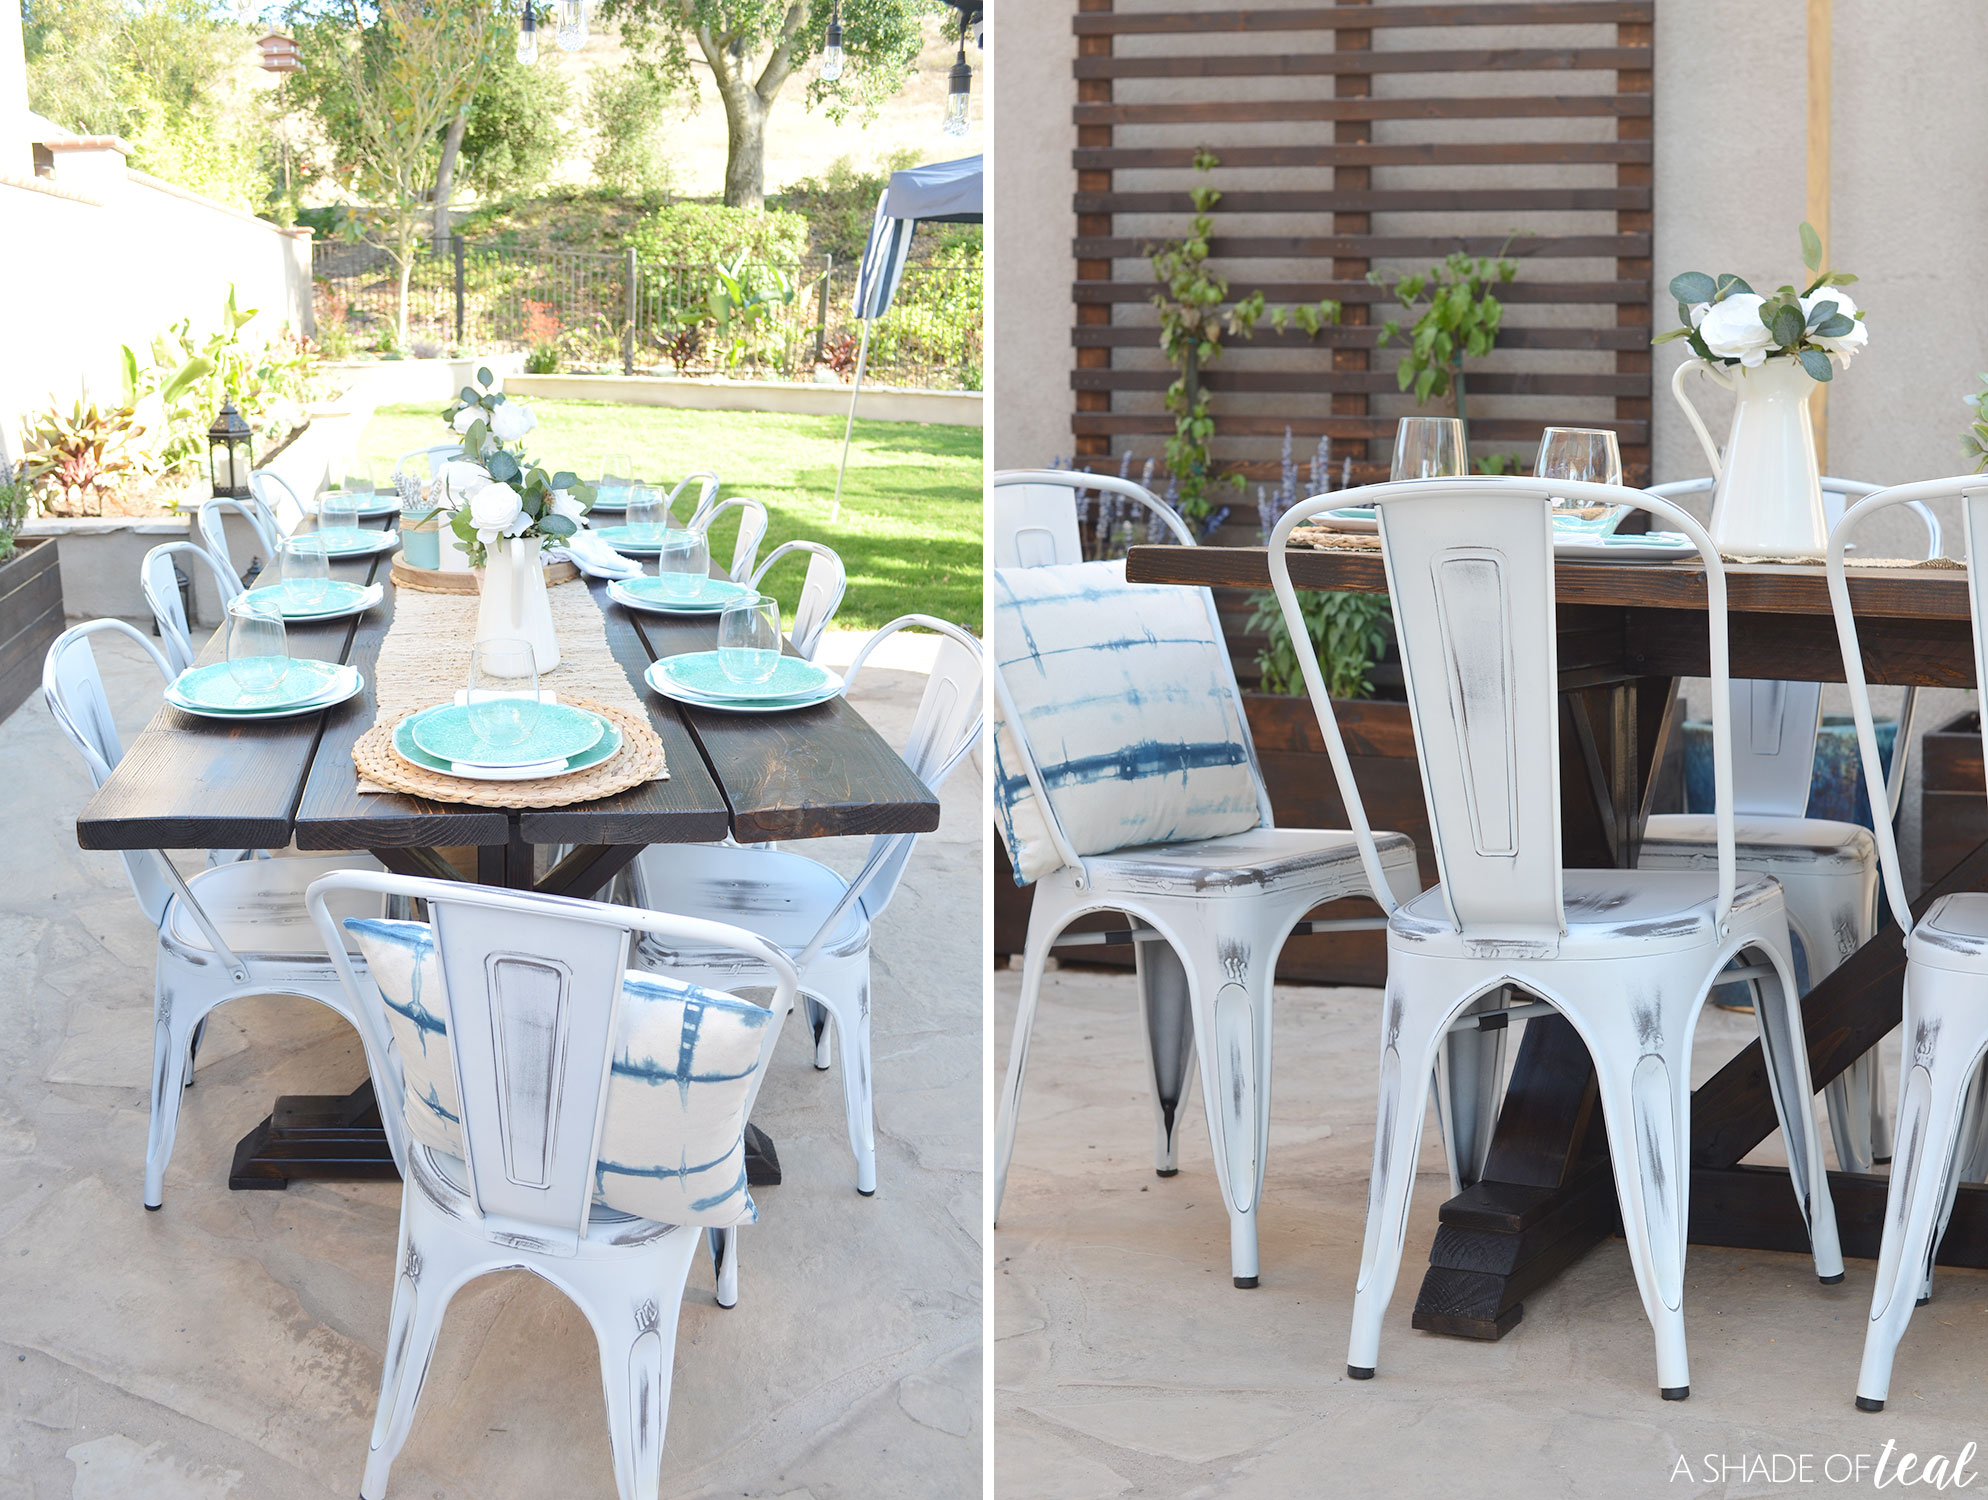 My New Outdoor Dining Space Plus a Giveaway